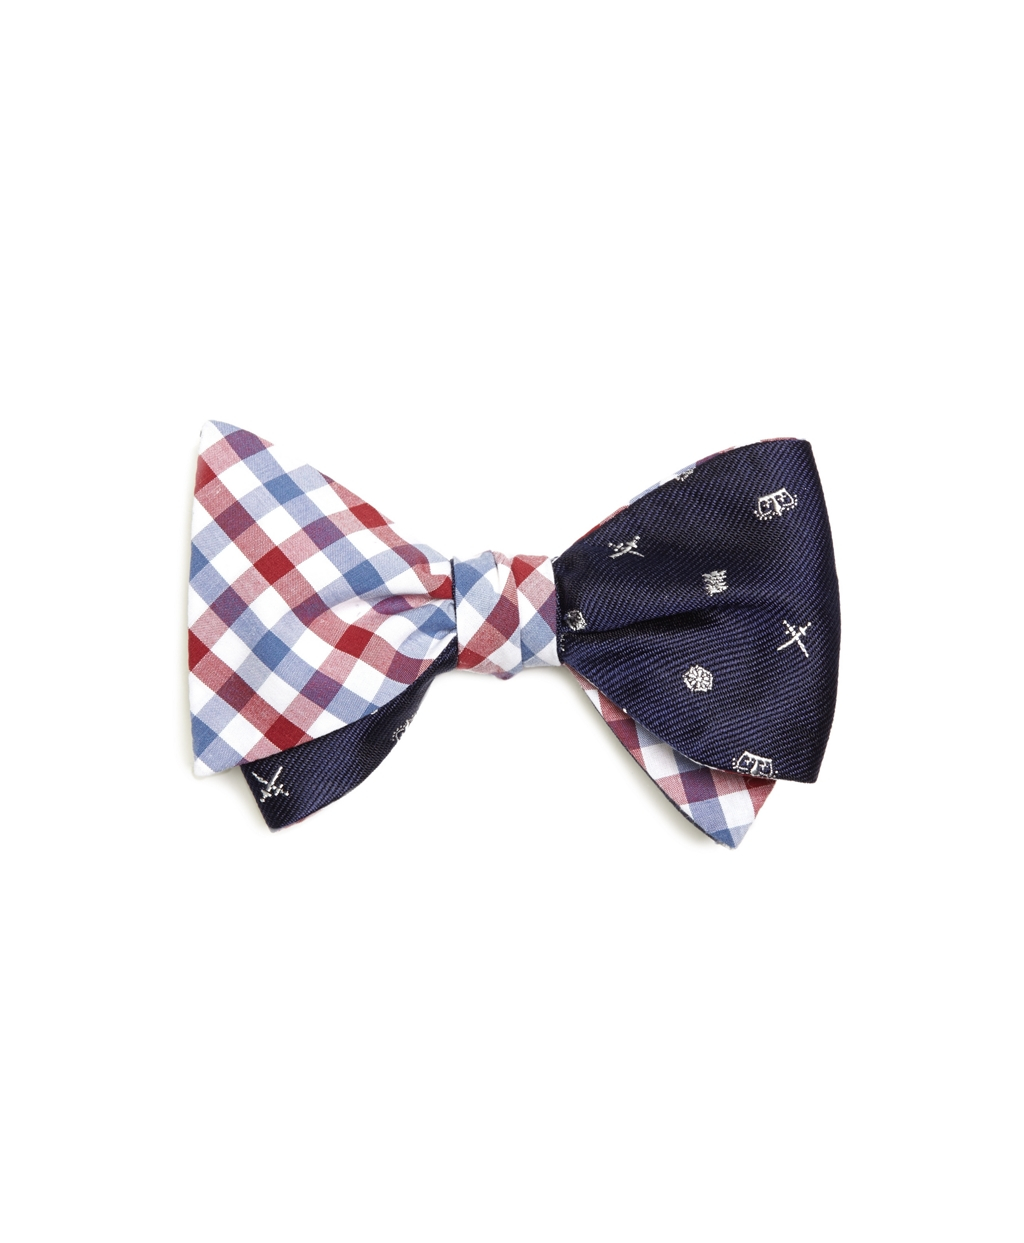 Lyst - Brooks Brothers Gingham With Heraldic Reversible ...